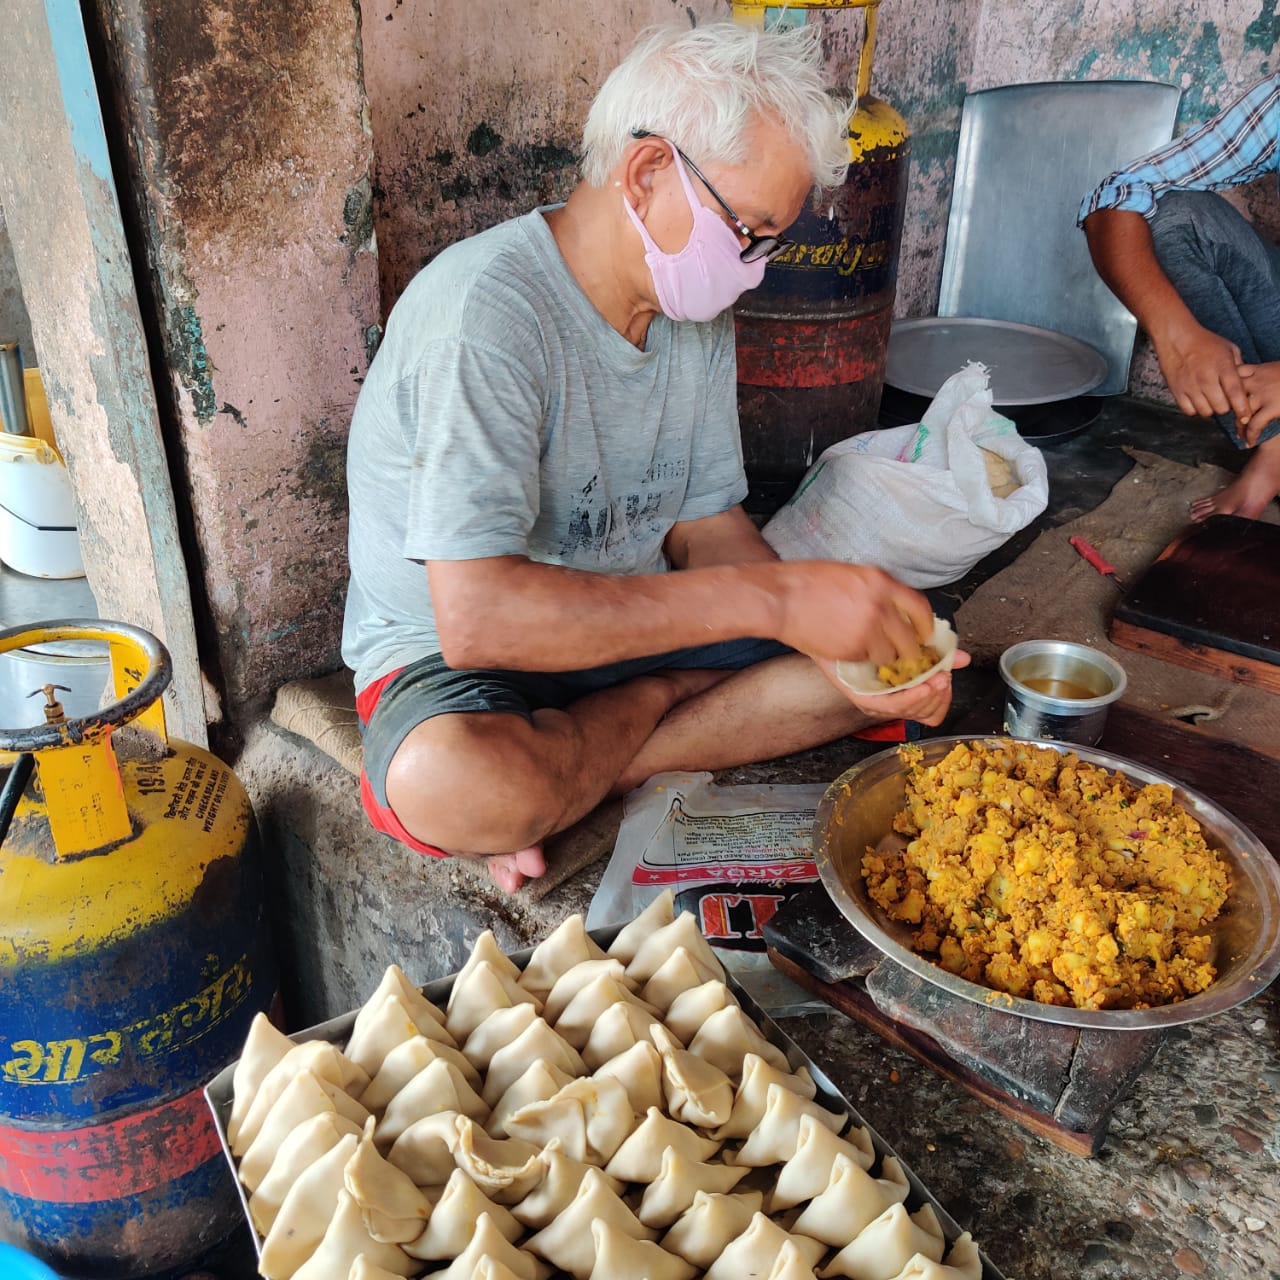 The Rajasthan version of fiery samosas in making.